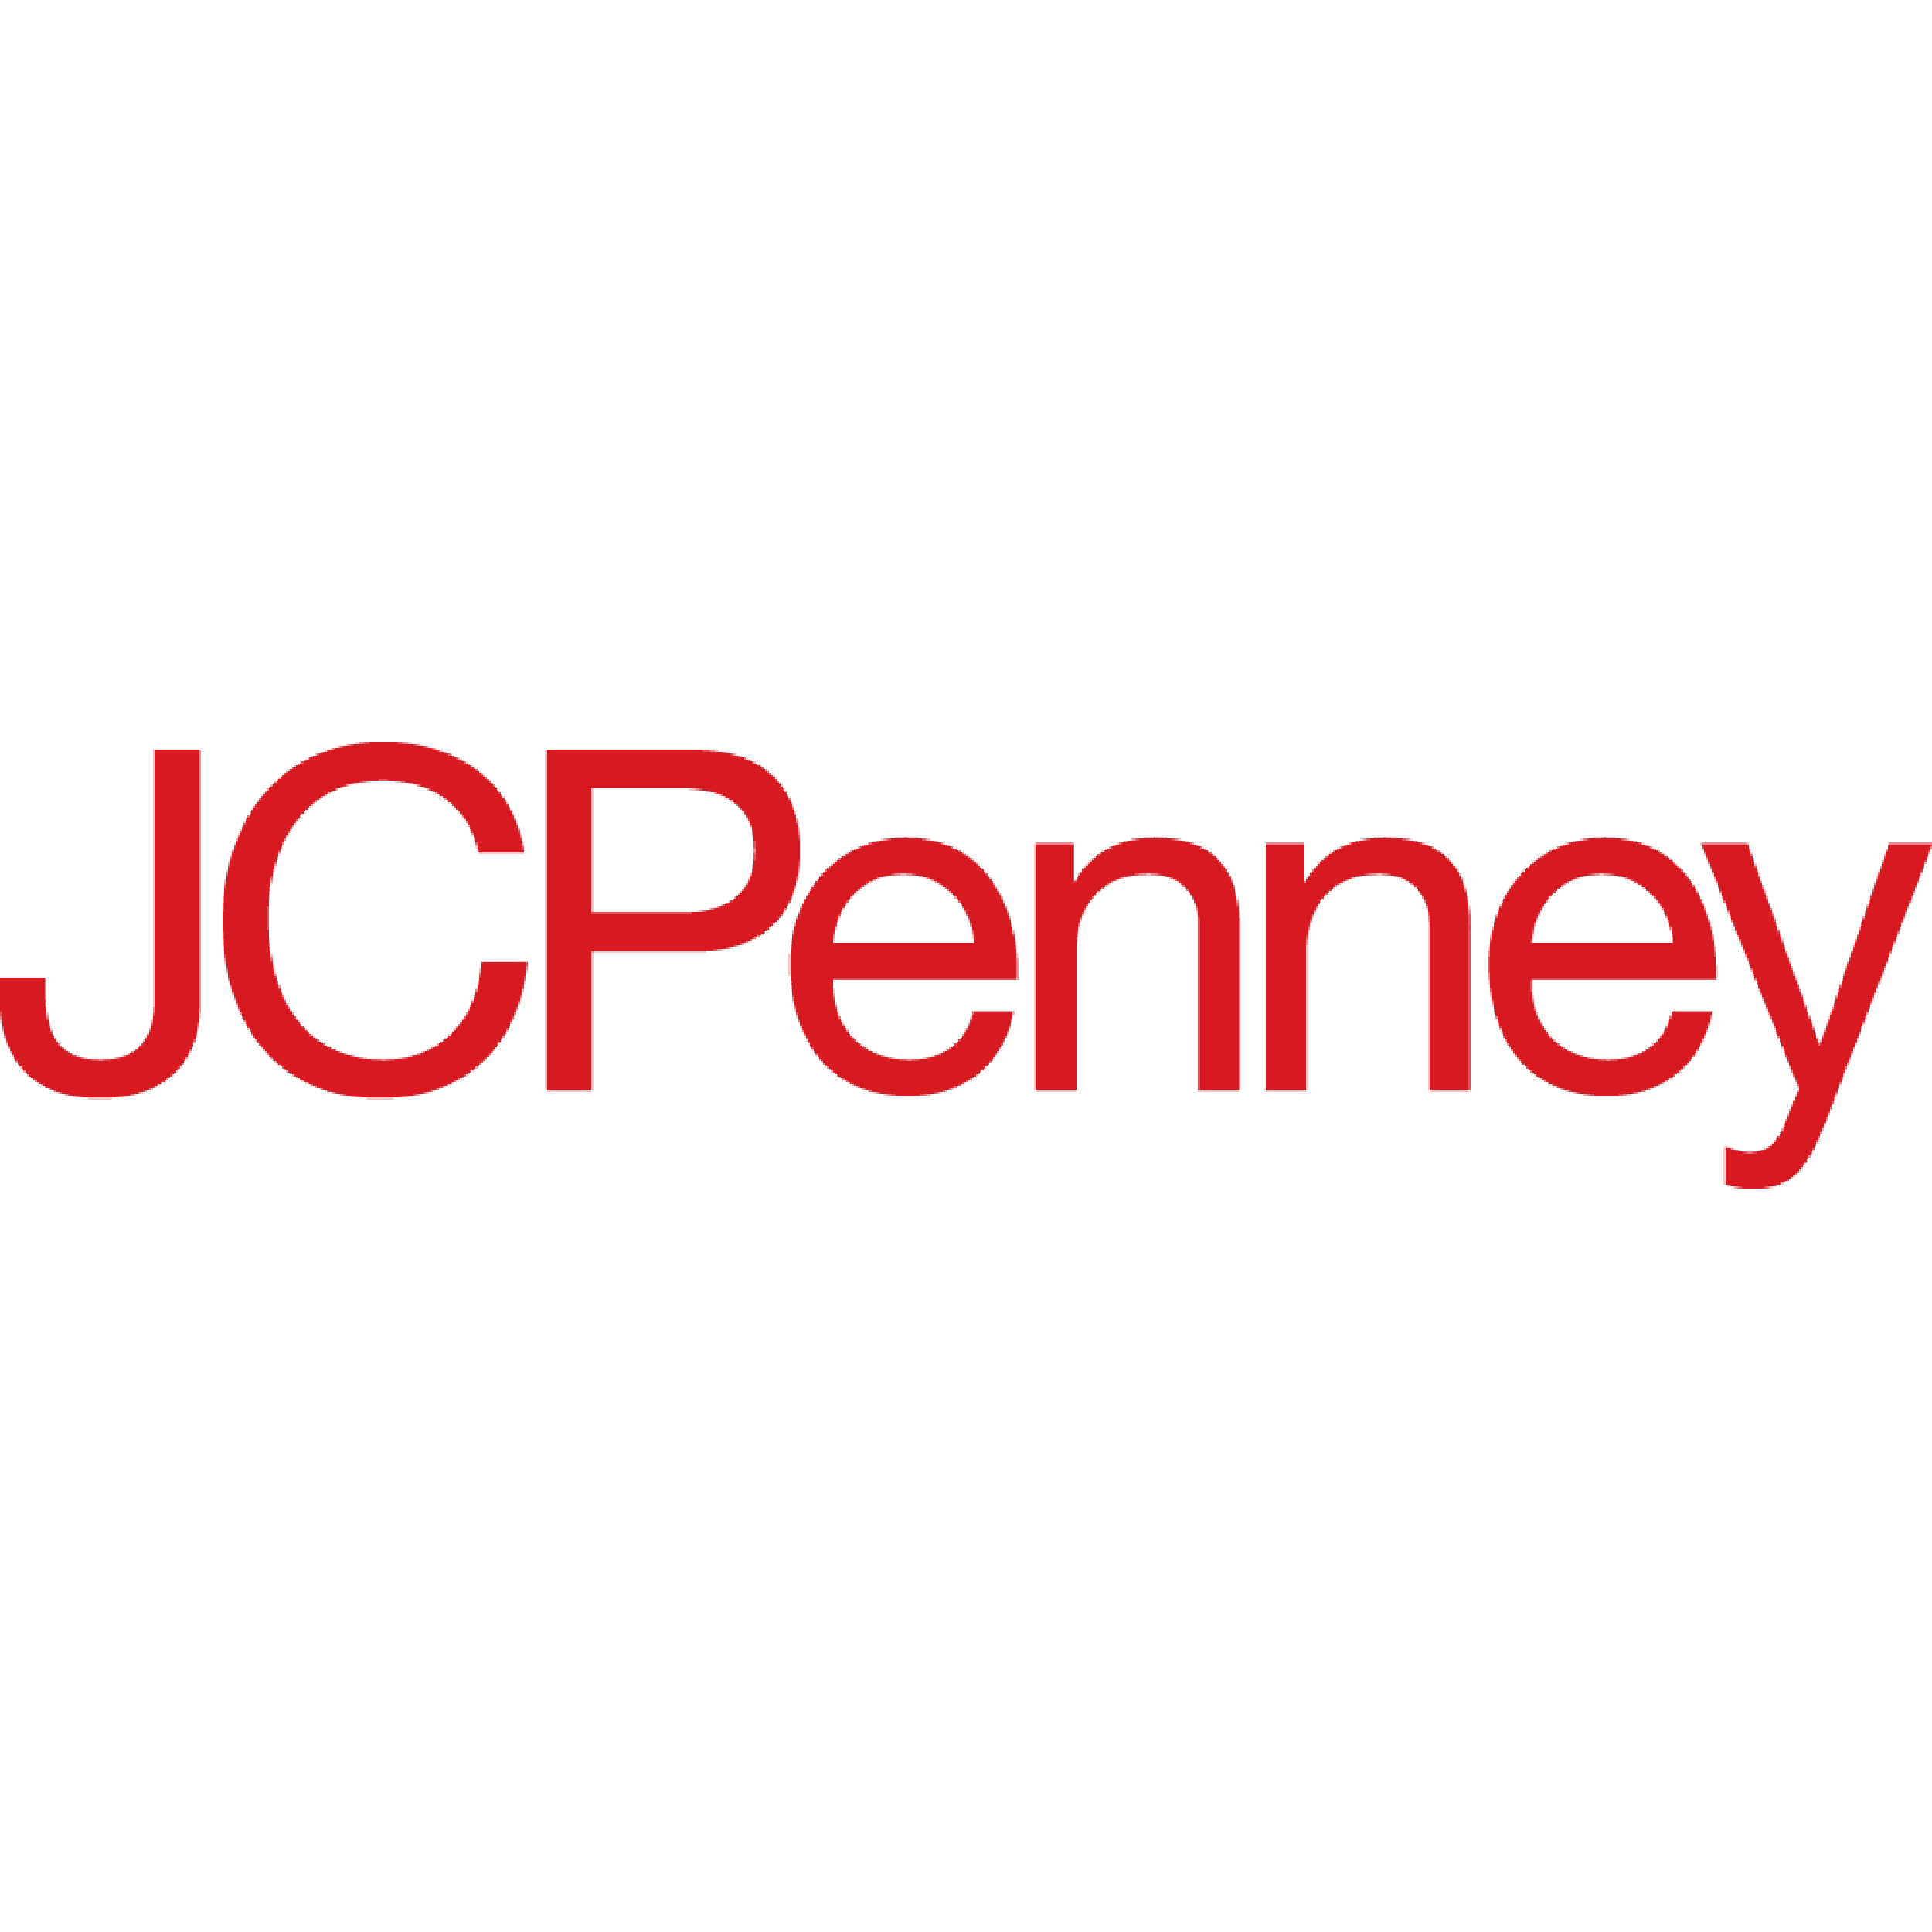 JCPenney - Mansfield, OH - Department Stores